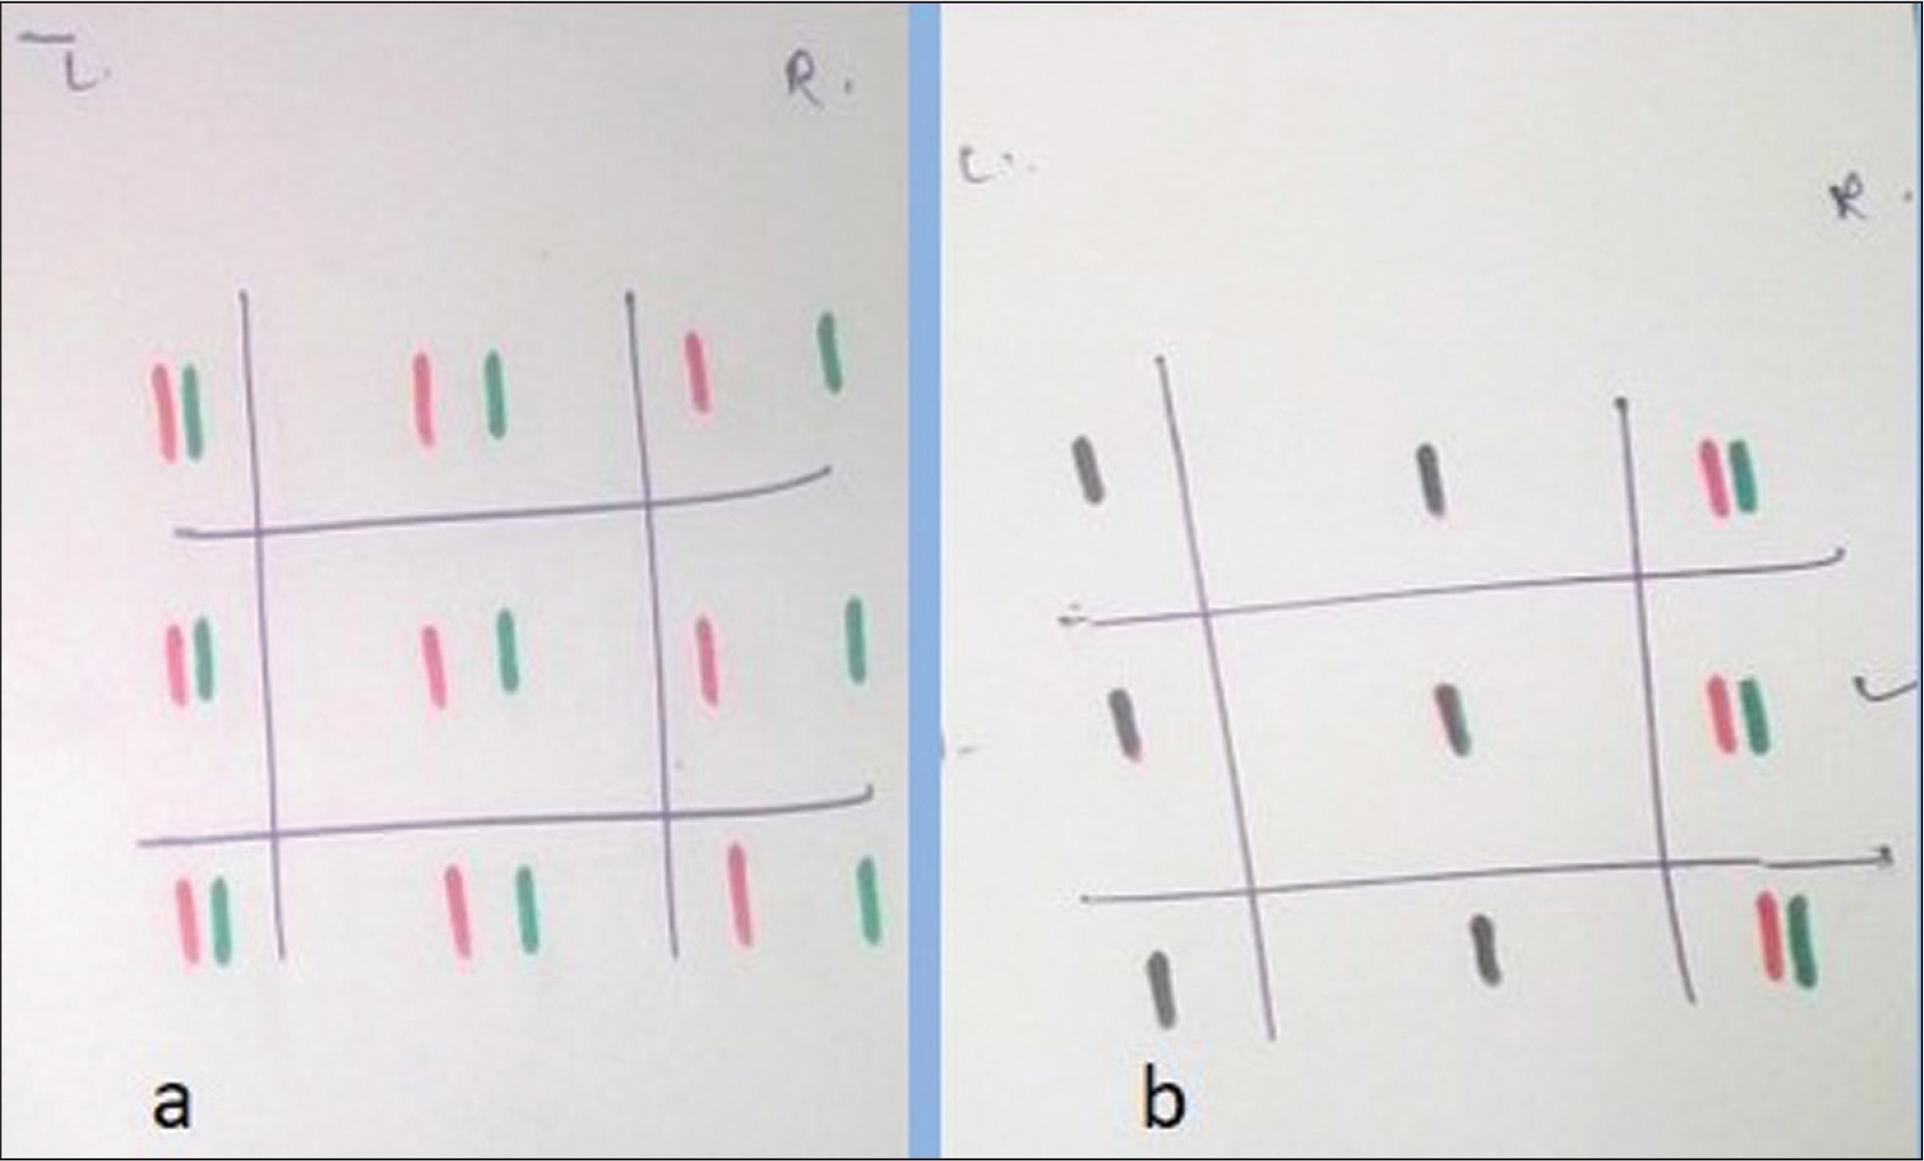 (A) Preoperative diplopia chart shows horizontal crossed diplopia in all gazes with maximum separation in dextroversion. (B) Postoperative diplopia chart shows no diplopia in primary position and minimal horizontal diplopia in extreme dextroversion.